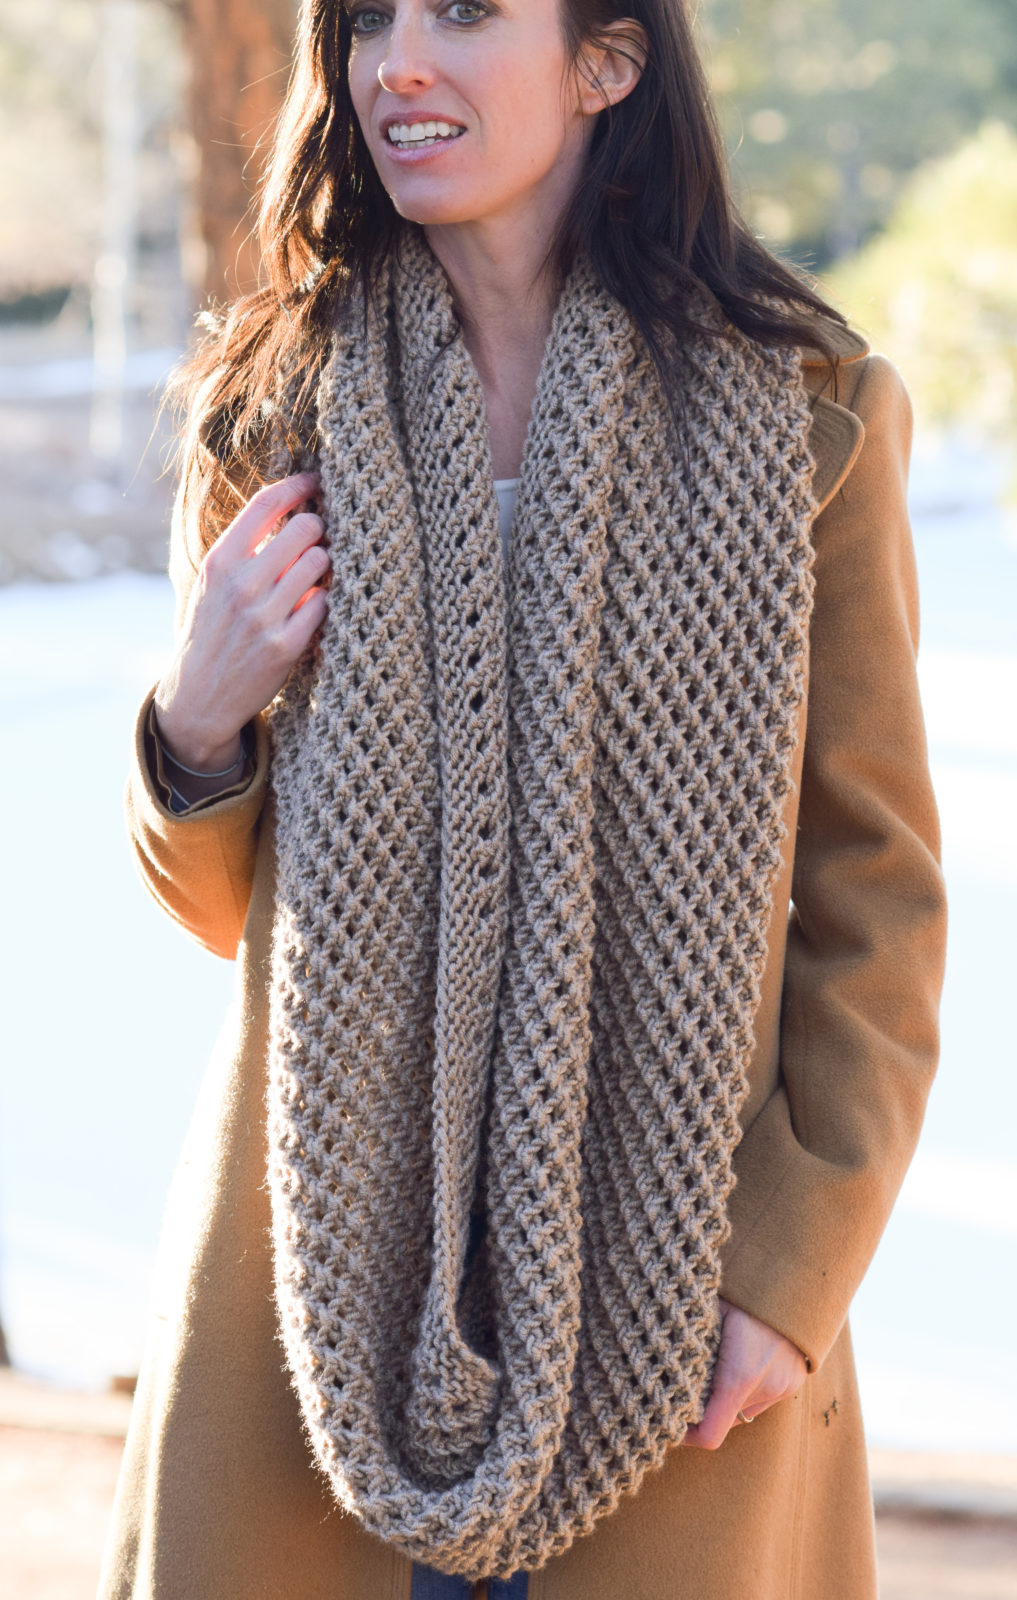 Best Knitting Vacations : The traveler knit infinicowl scarf pattern mama in a stitch